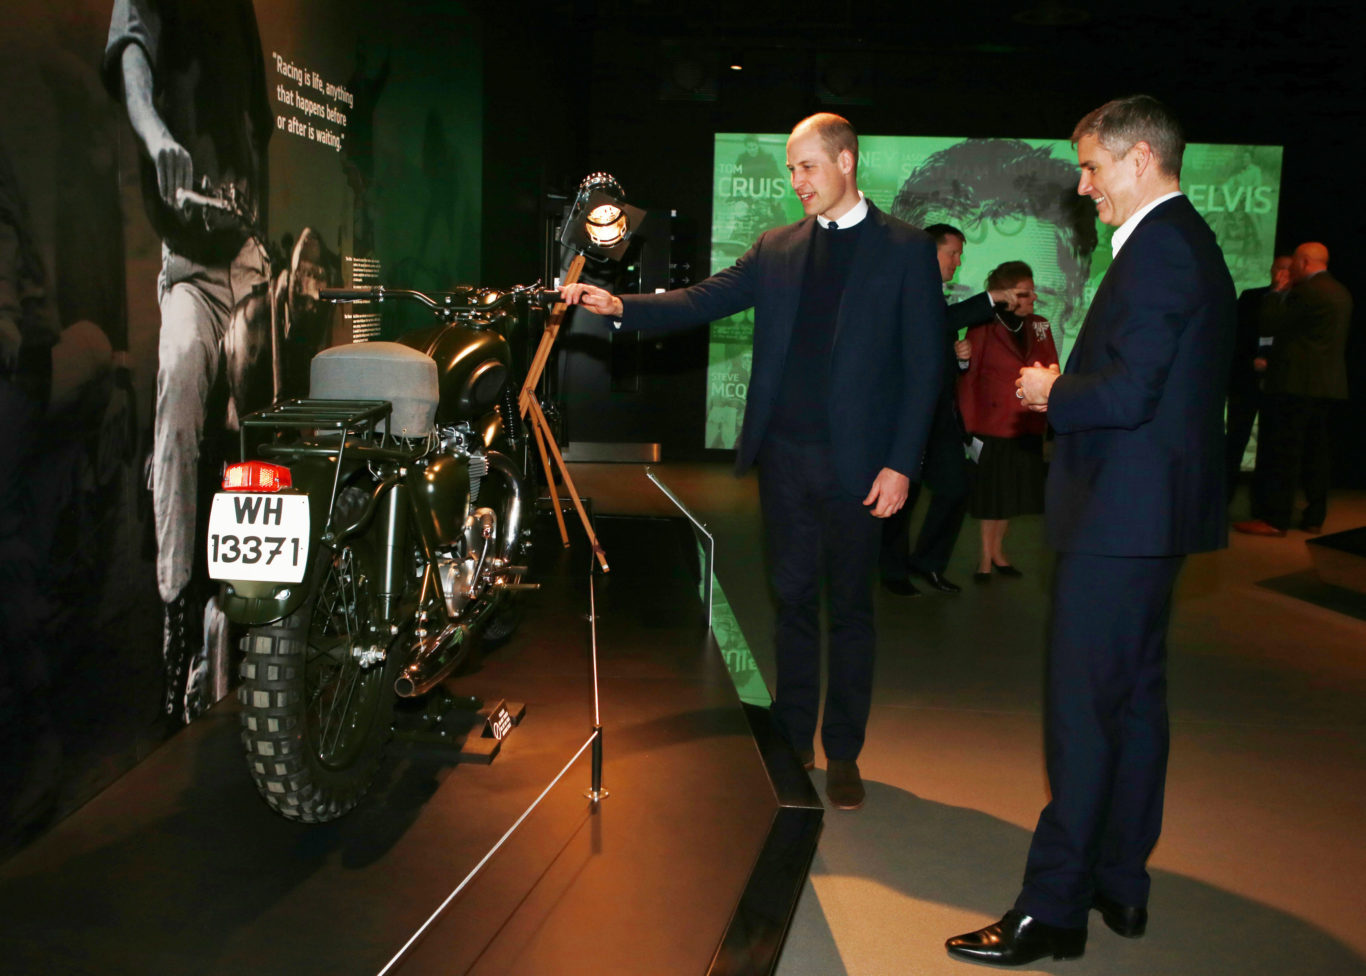 William admires the Triumph TR6 made famous by Steve McQueen in The Great Escape (Ian Vogler/Daily Mirror/PA)